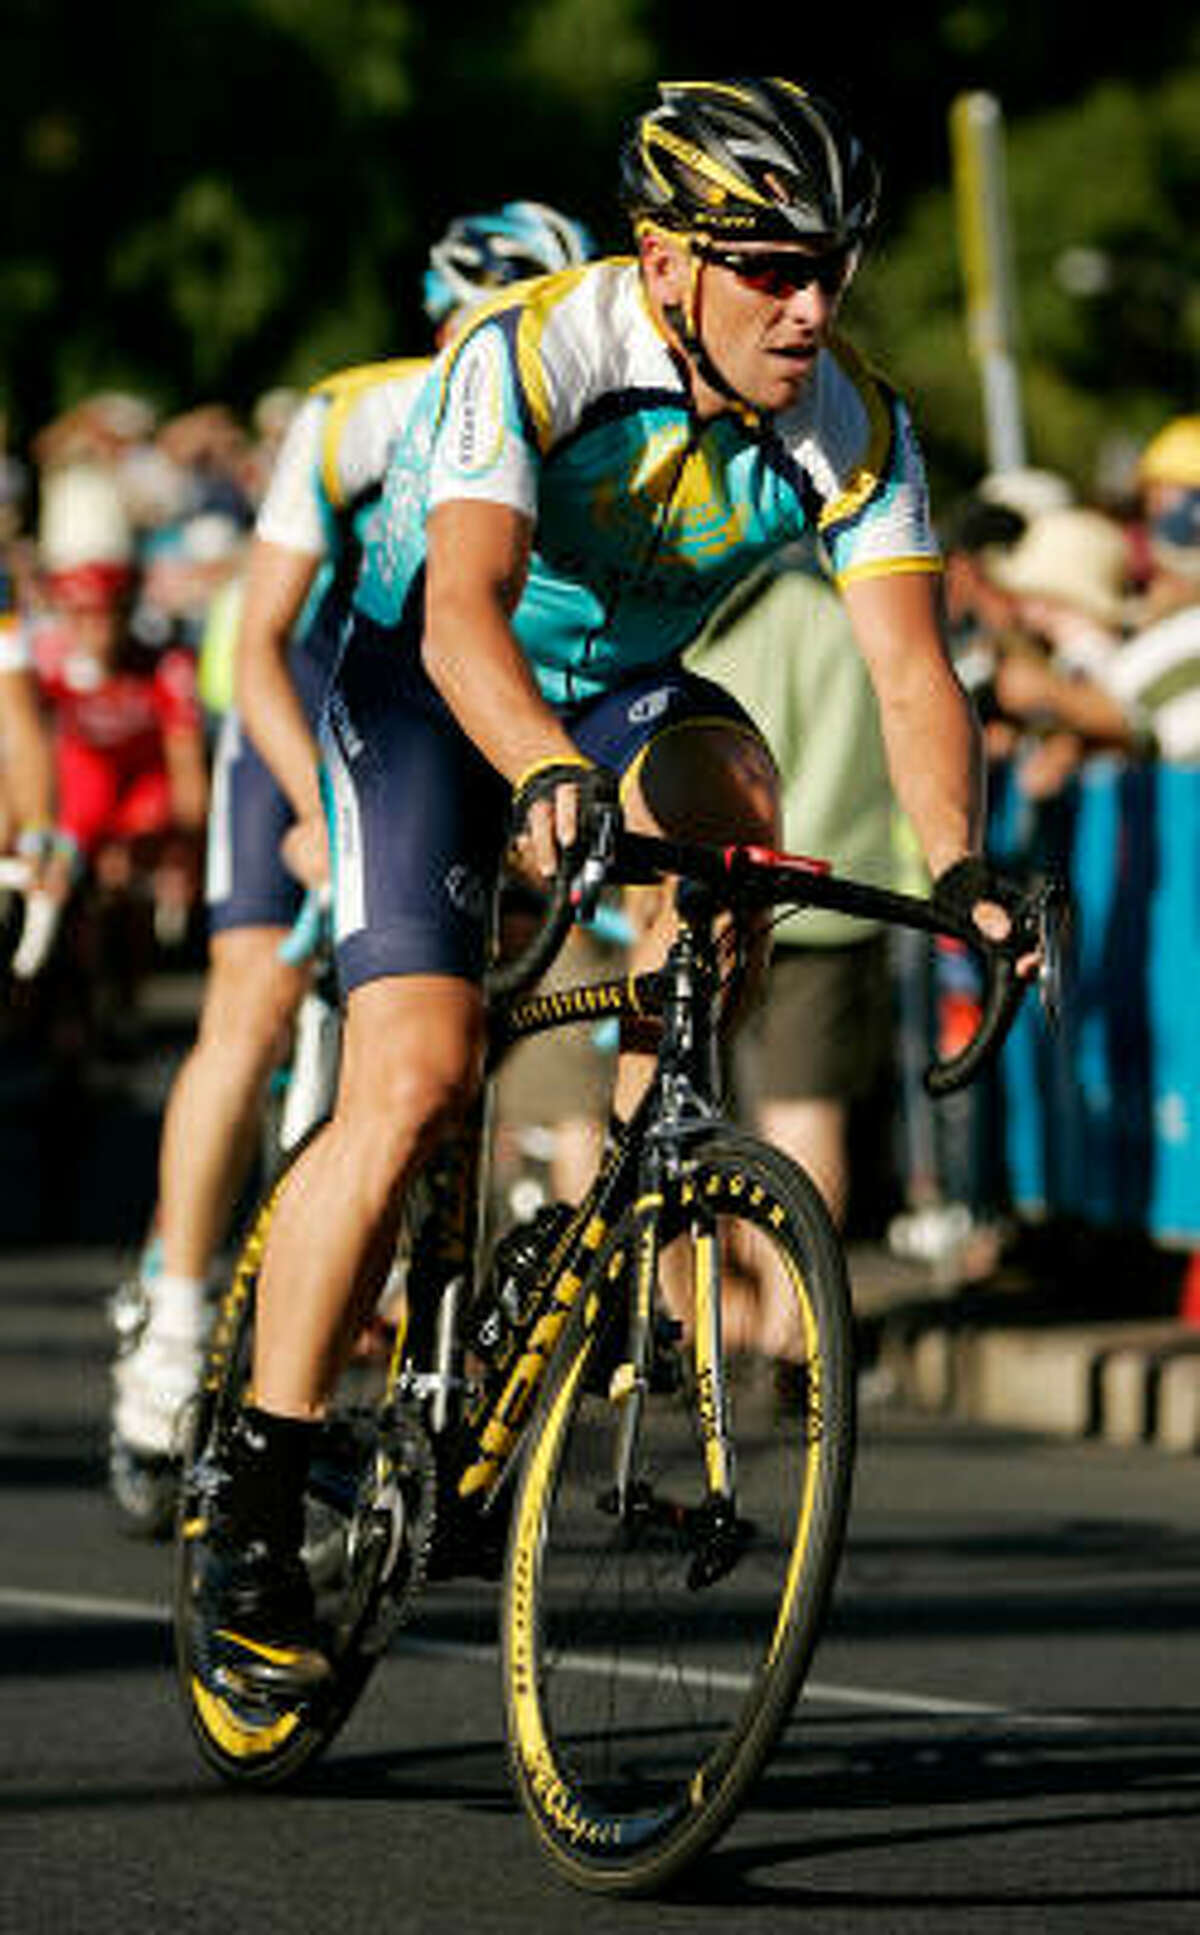 Lance Armstrong rides practice laps before the Down Under Classic held in Adelaide, Australia.